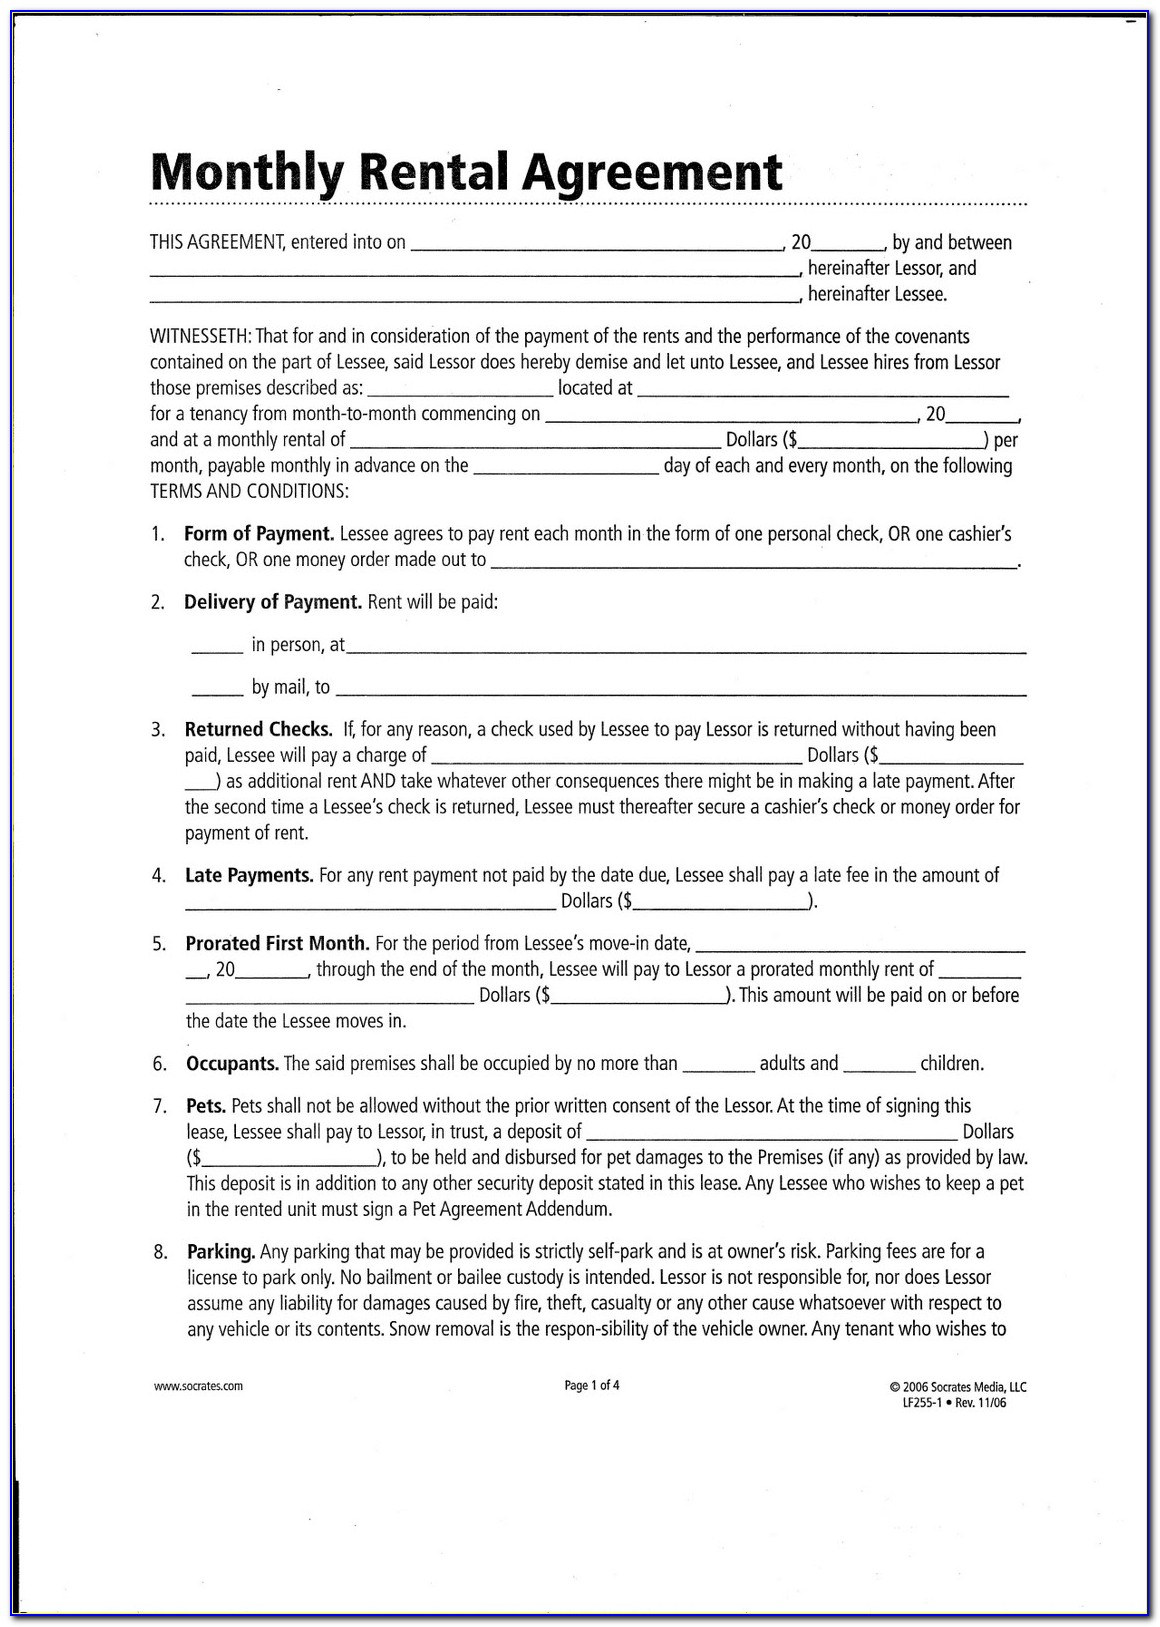 Monthly Rental Agreement Contract